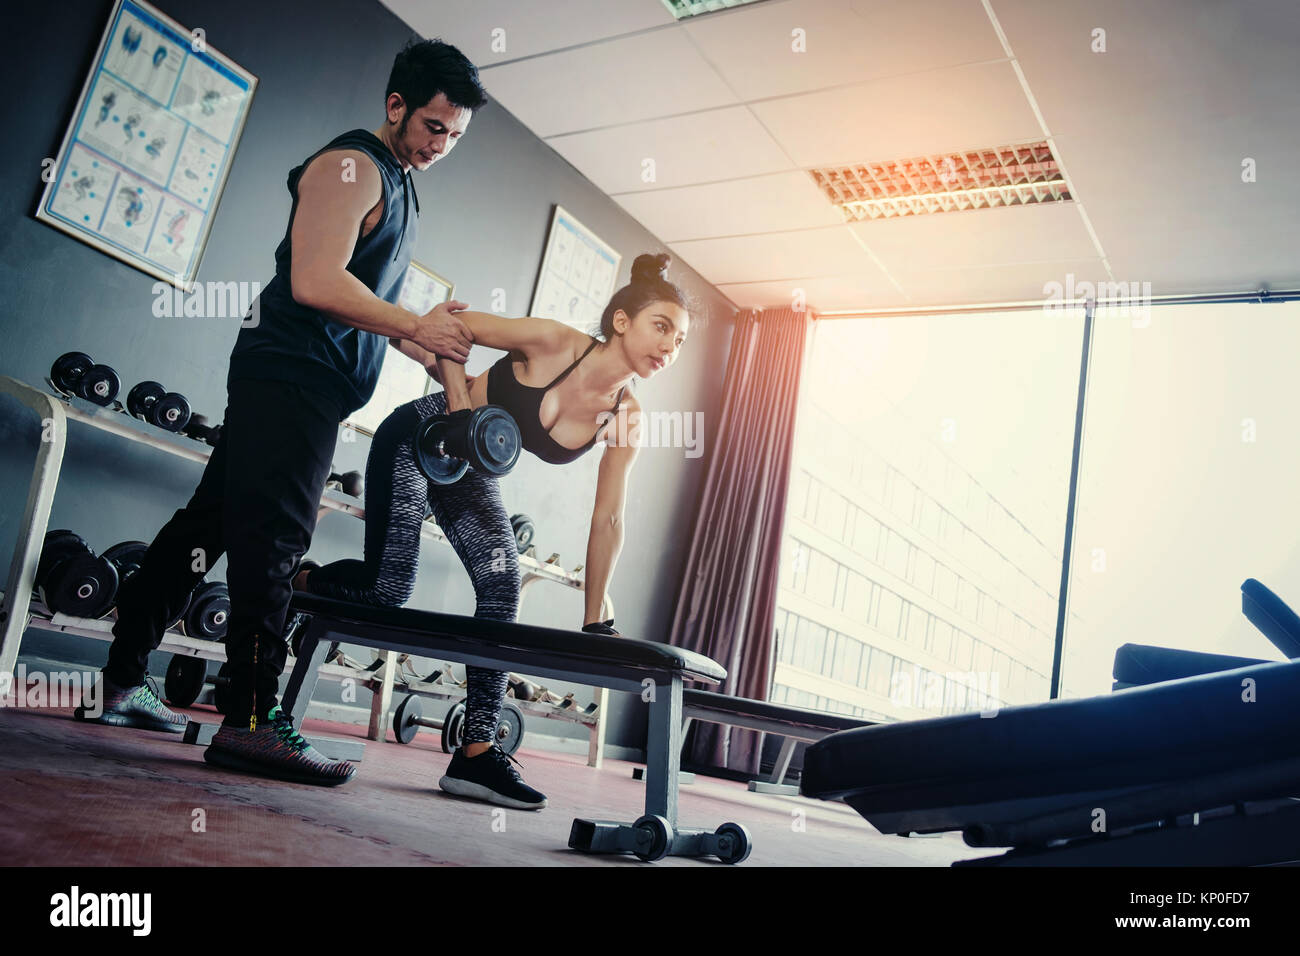 Sport girl doing weight exercises working with heavy dumbbells her personal trainer at Gym workout - Stock Image